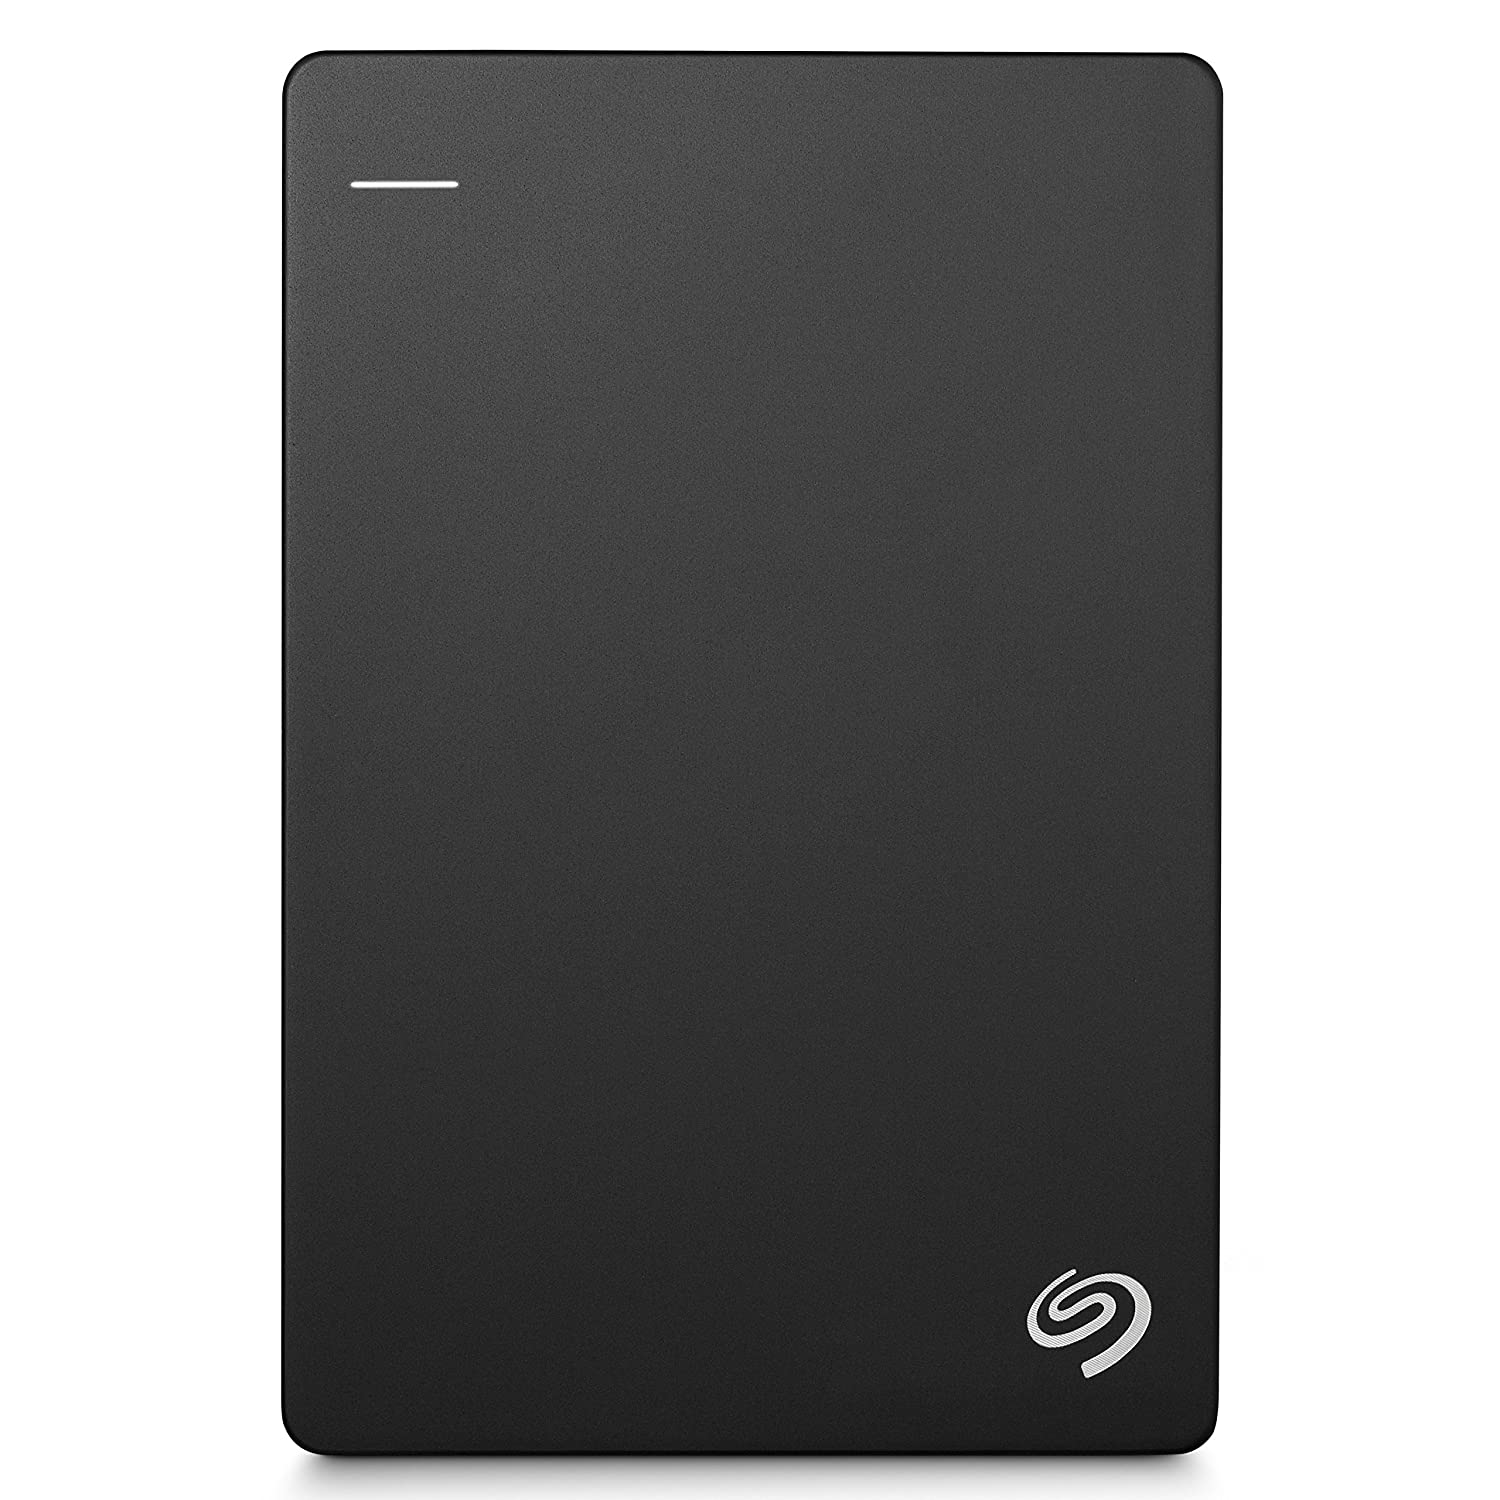 Seagate 2TB Backup Plus Slim (Black) USB 3.0 External Hard Drive for PC/Mac with 2 Months Free Adobe Photography Plan